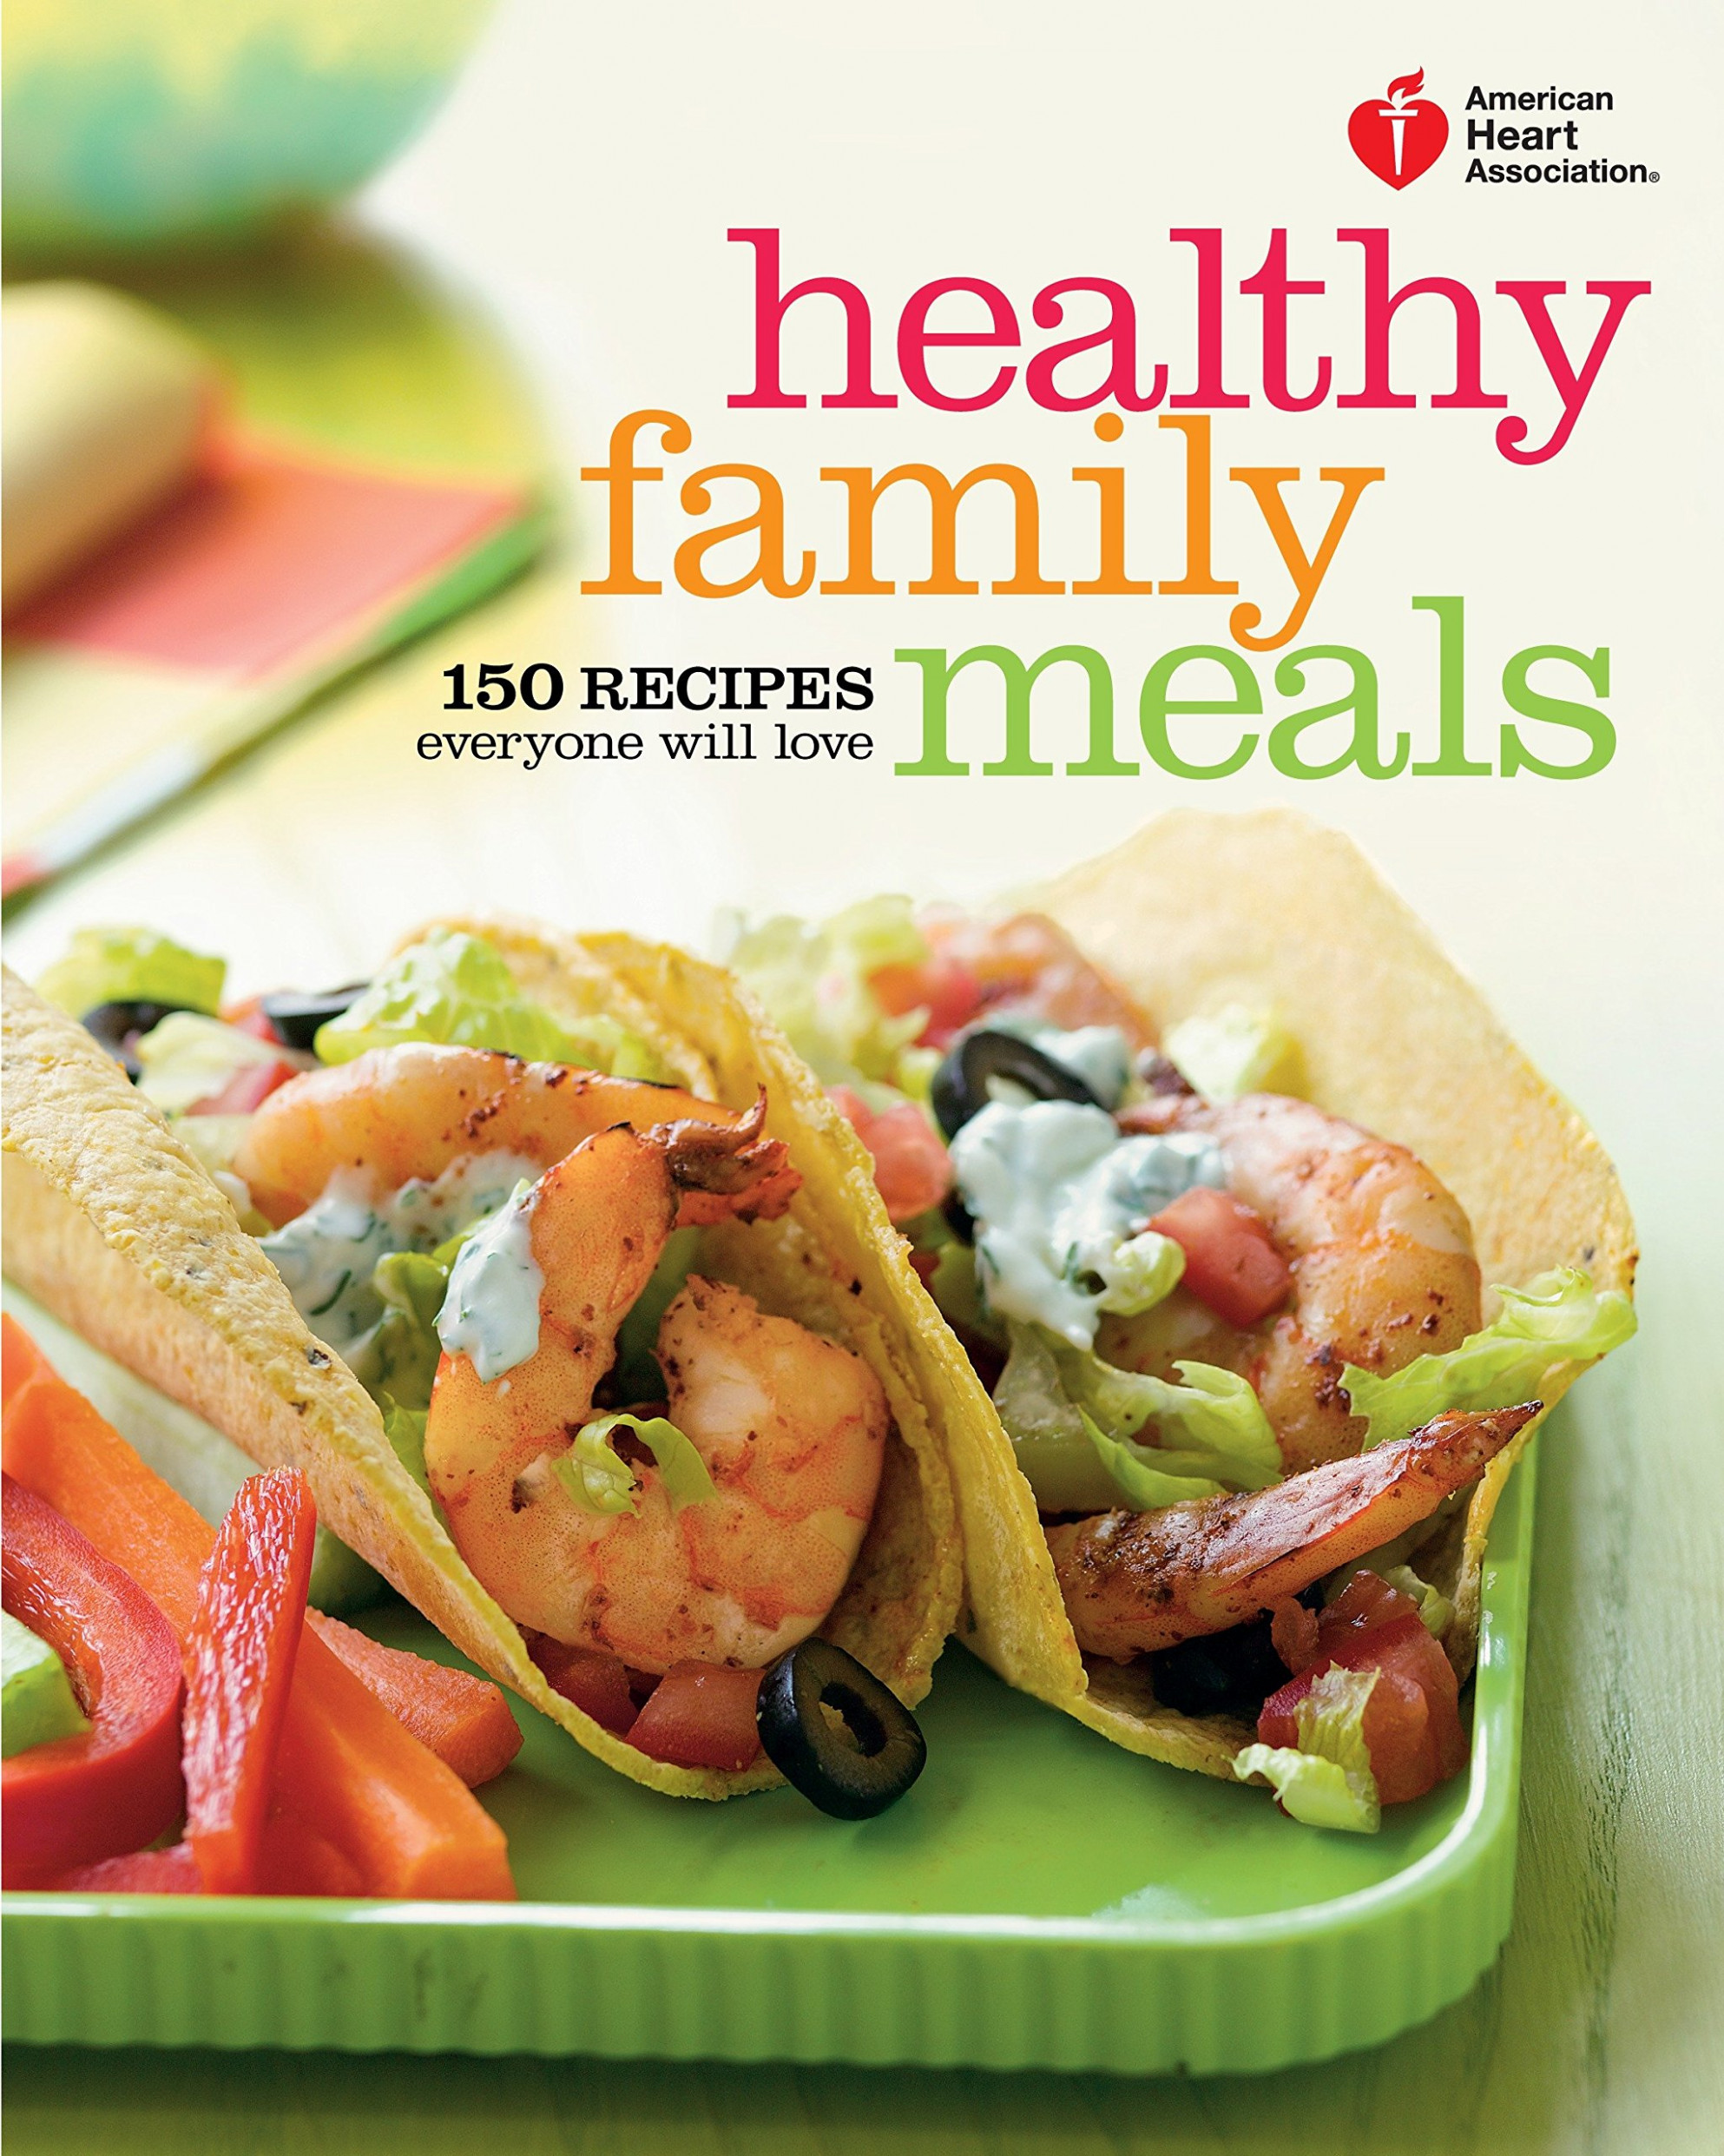 American Heart Association Healthy Family Meals: 14 Recipes ..